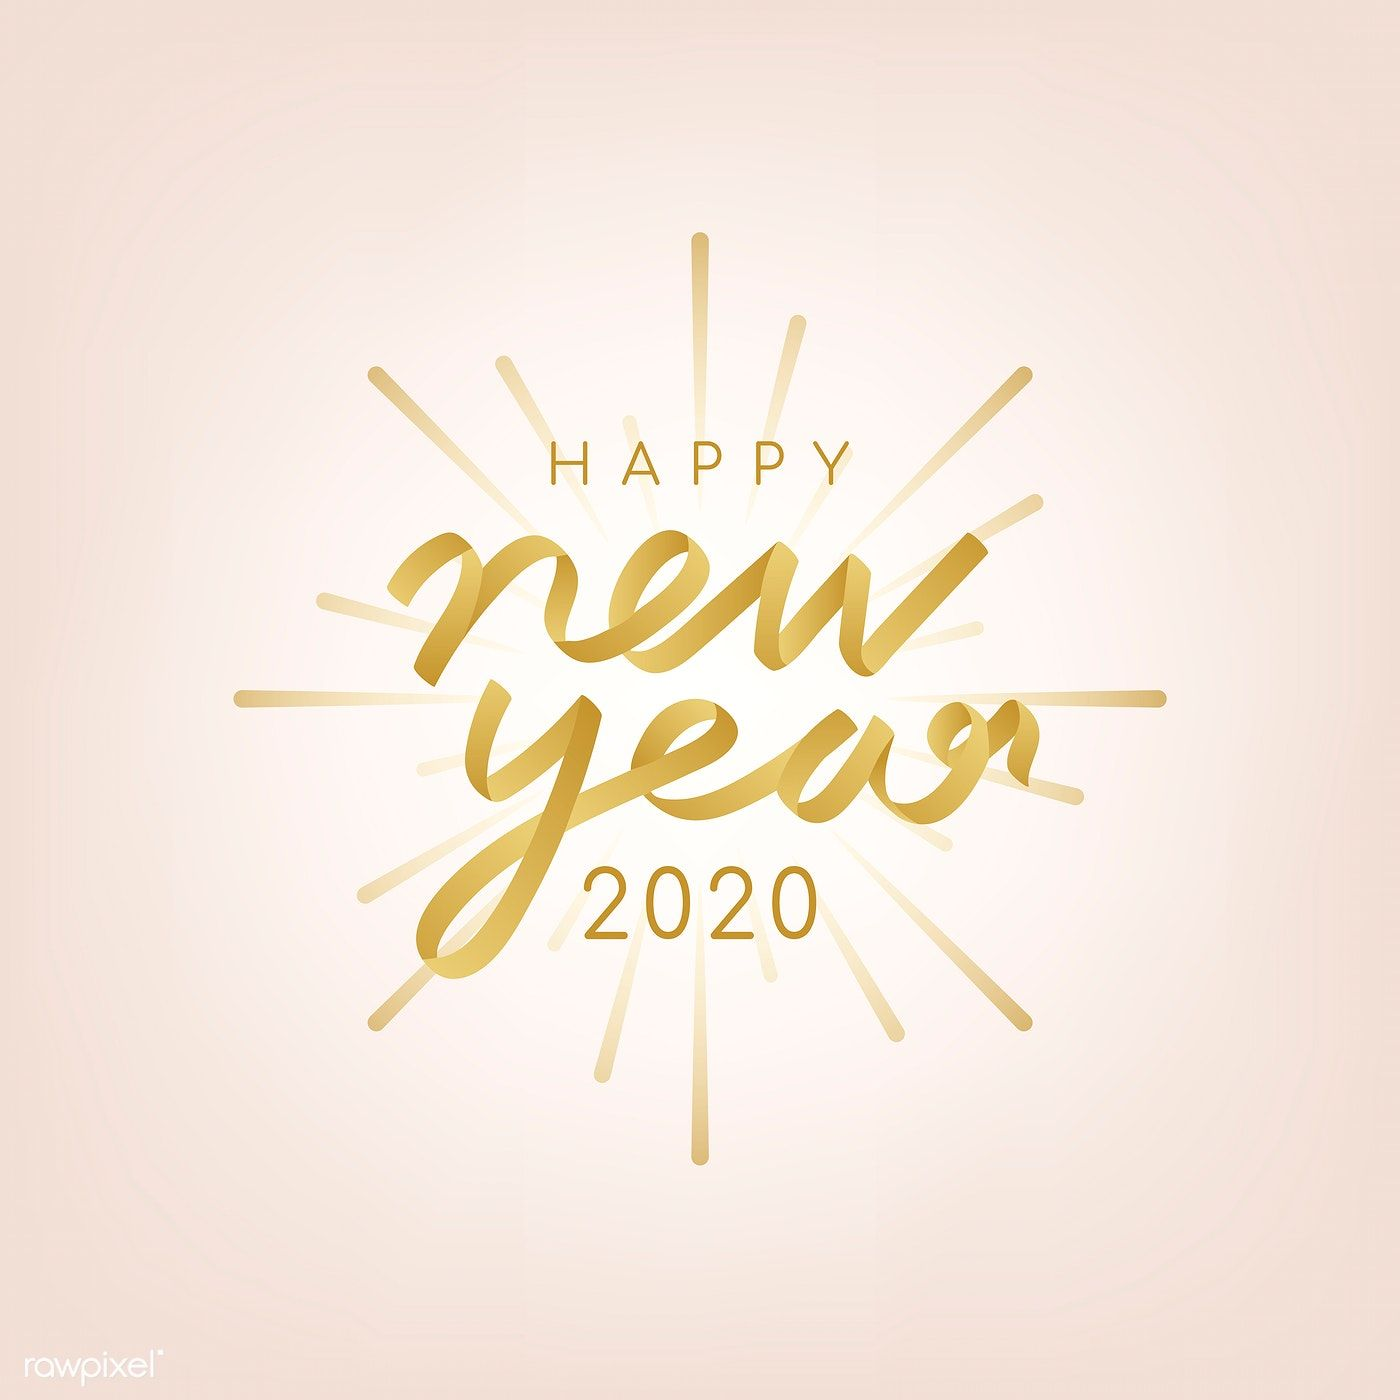 Happy New Year Png New Year Sublimation Designs Downloads Etsy Happy New Year Png Screen Printing Framed Prints